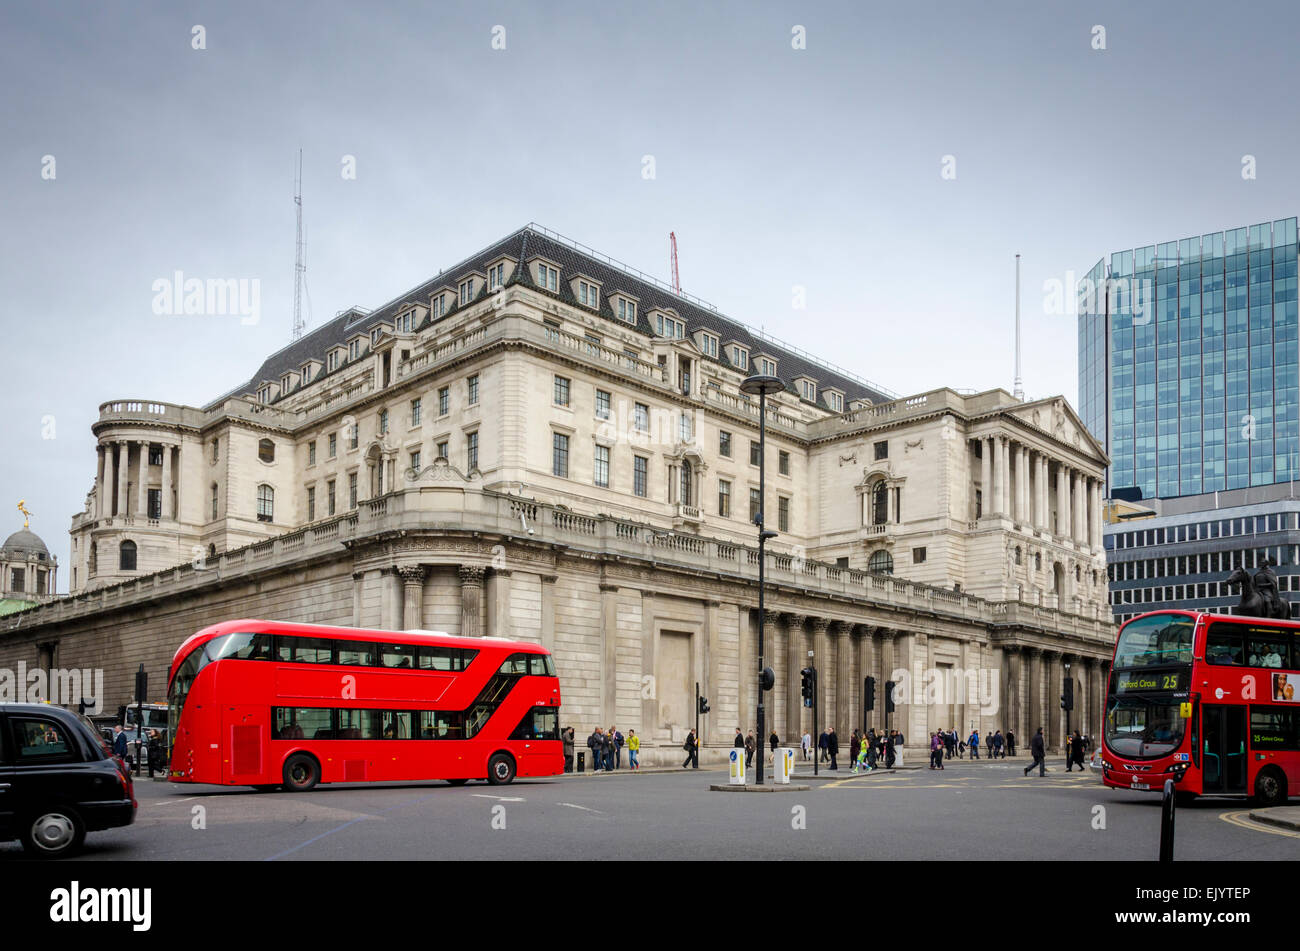 Red London bus in front of the Bank of England building, Threadneedle Street, City of London, UK - Stock Image